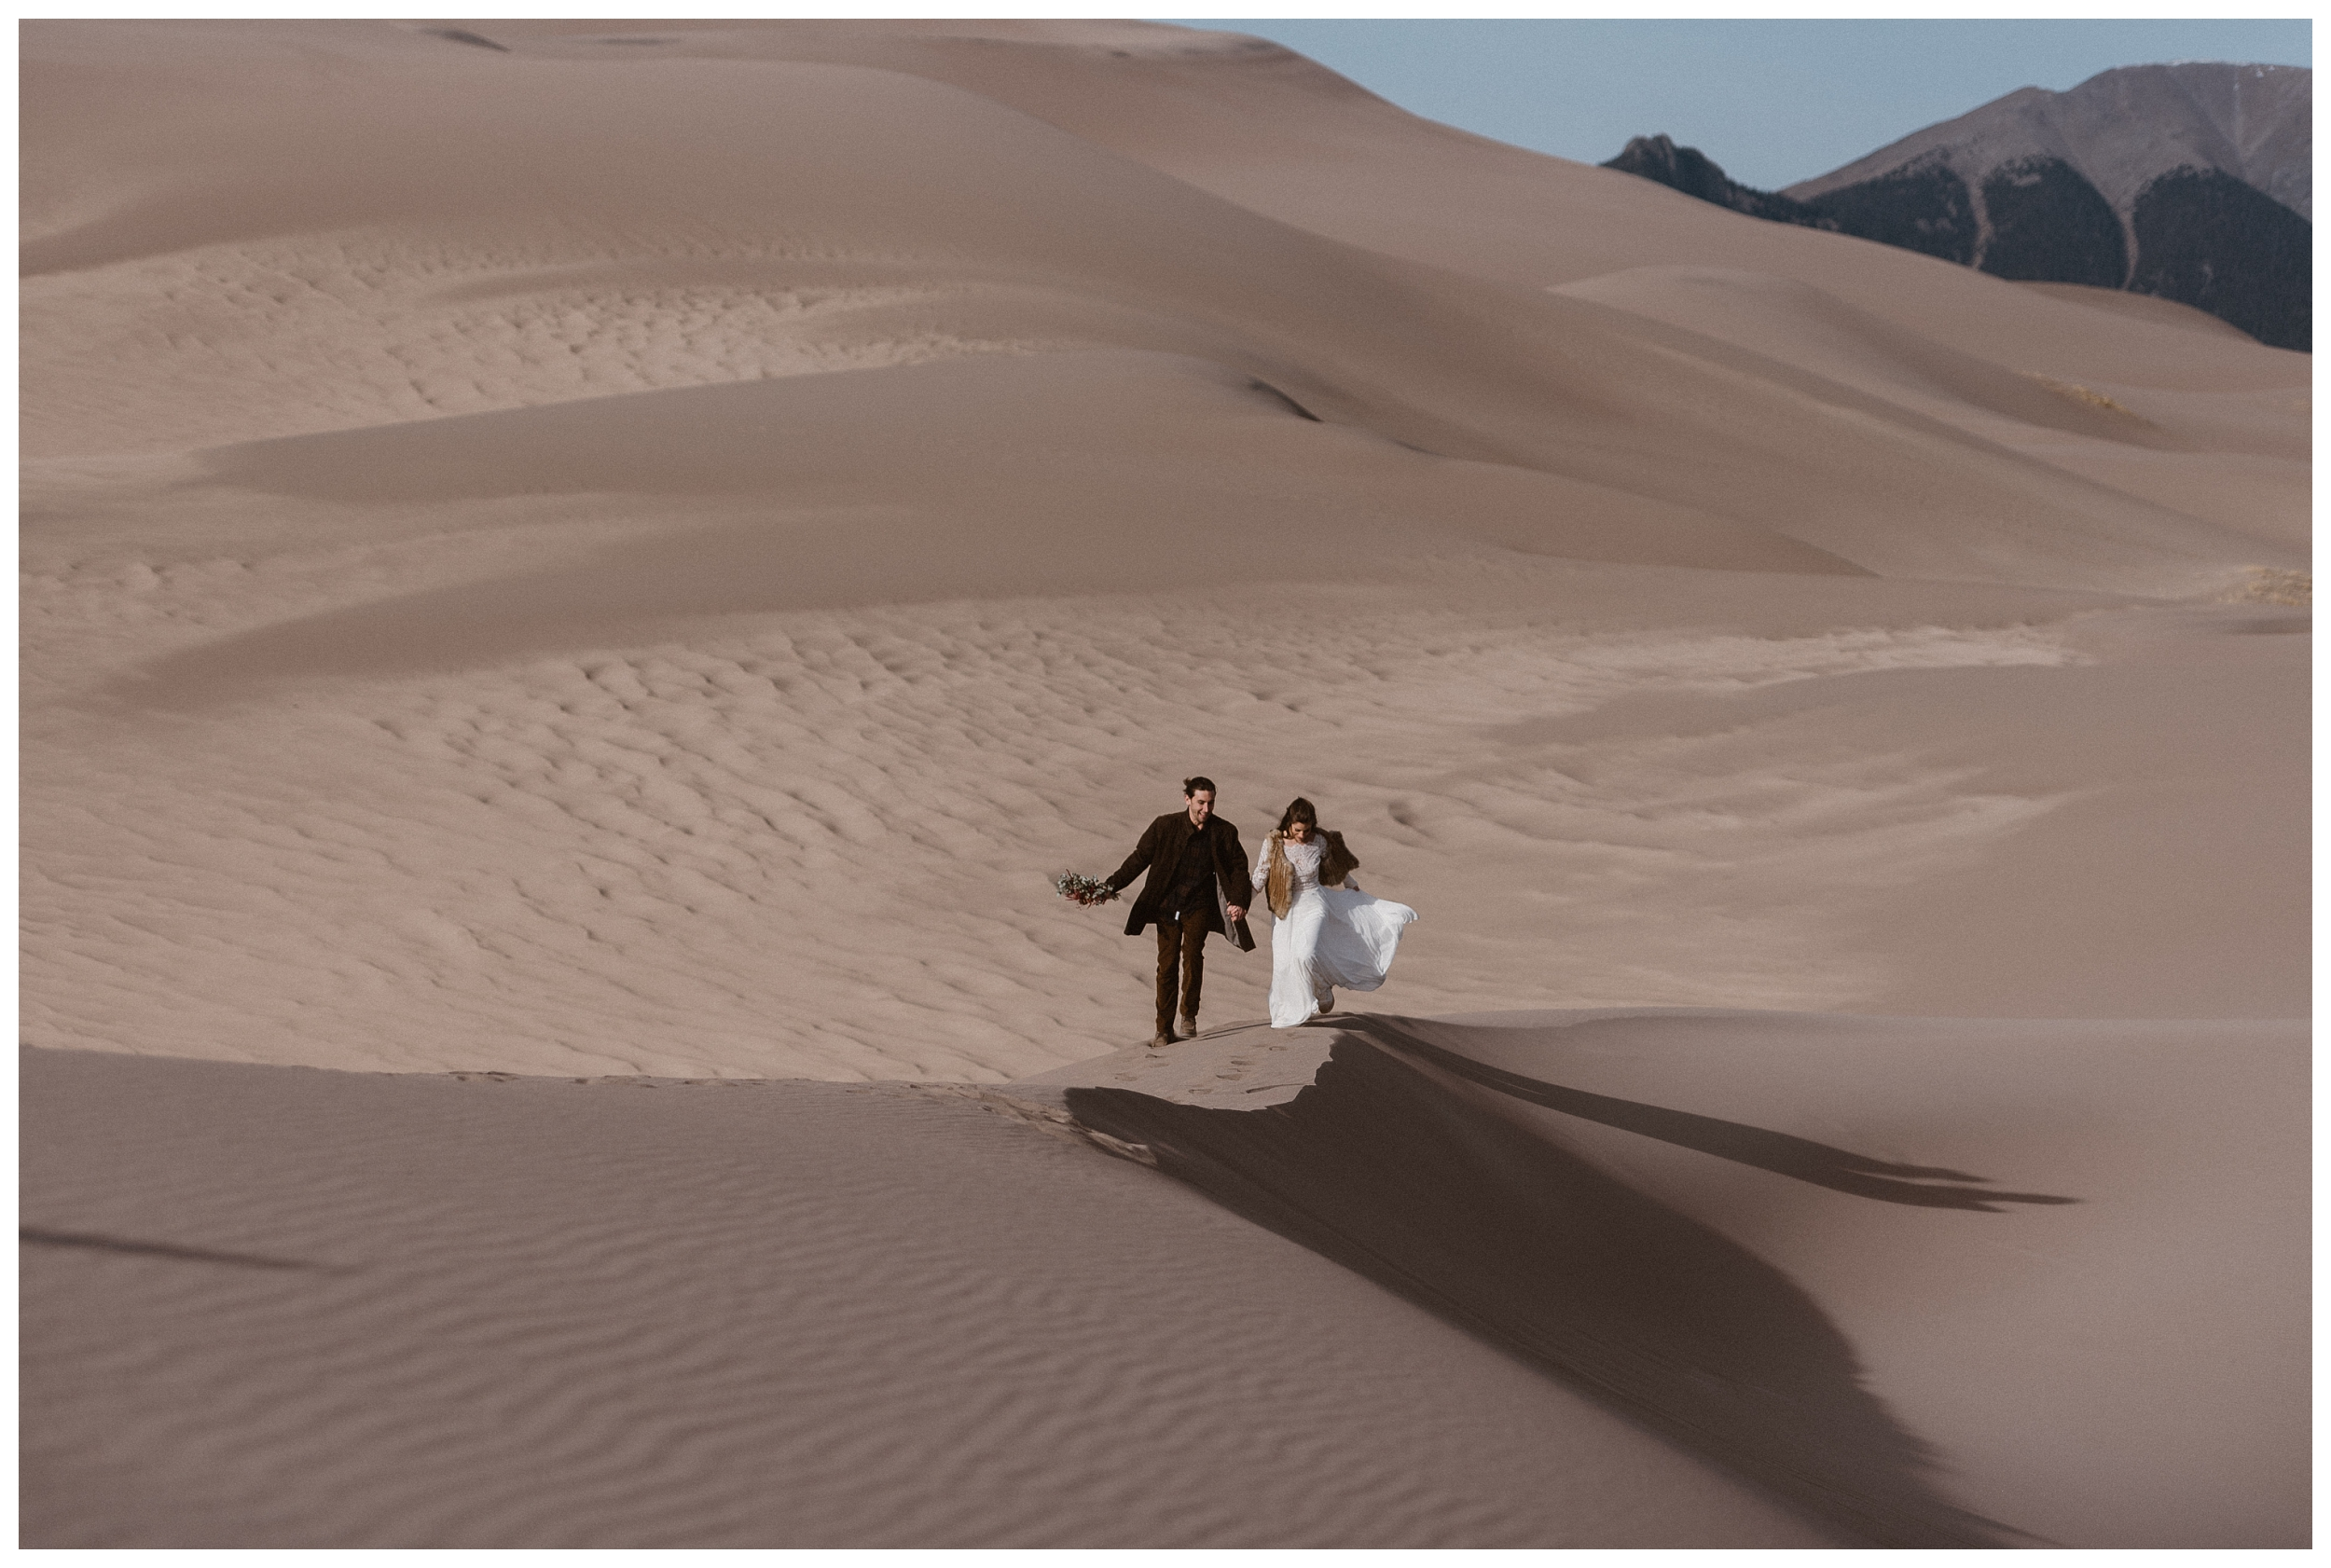 Olivia and Justin walk the Great Sand Dunes National Park together during their adventure elopement. Photo by Maddie Mae Photo, Adventures Instead.